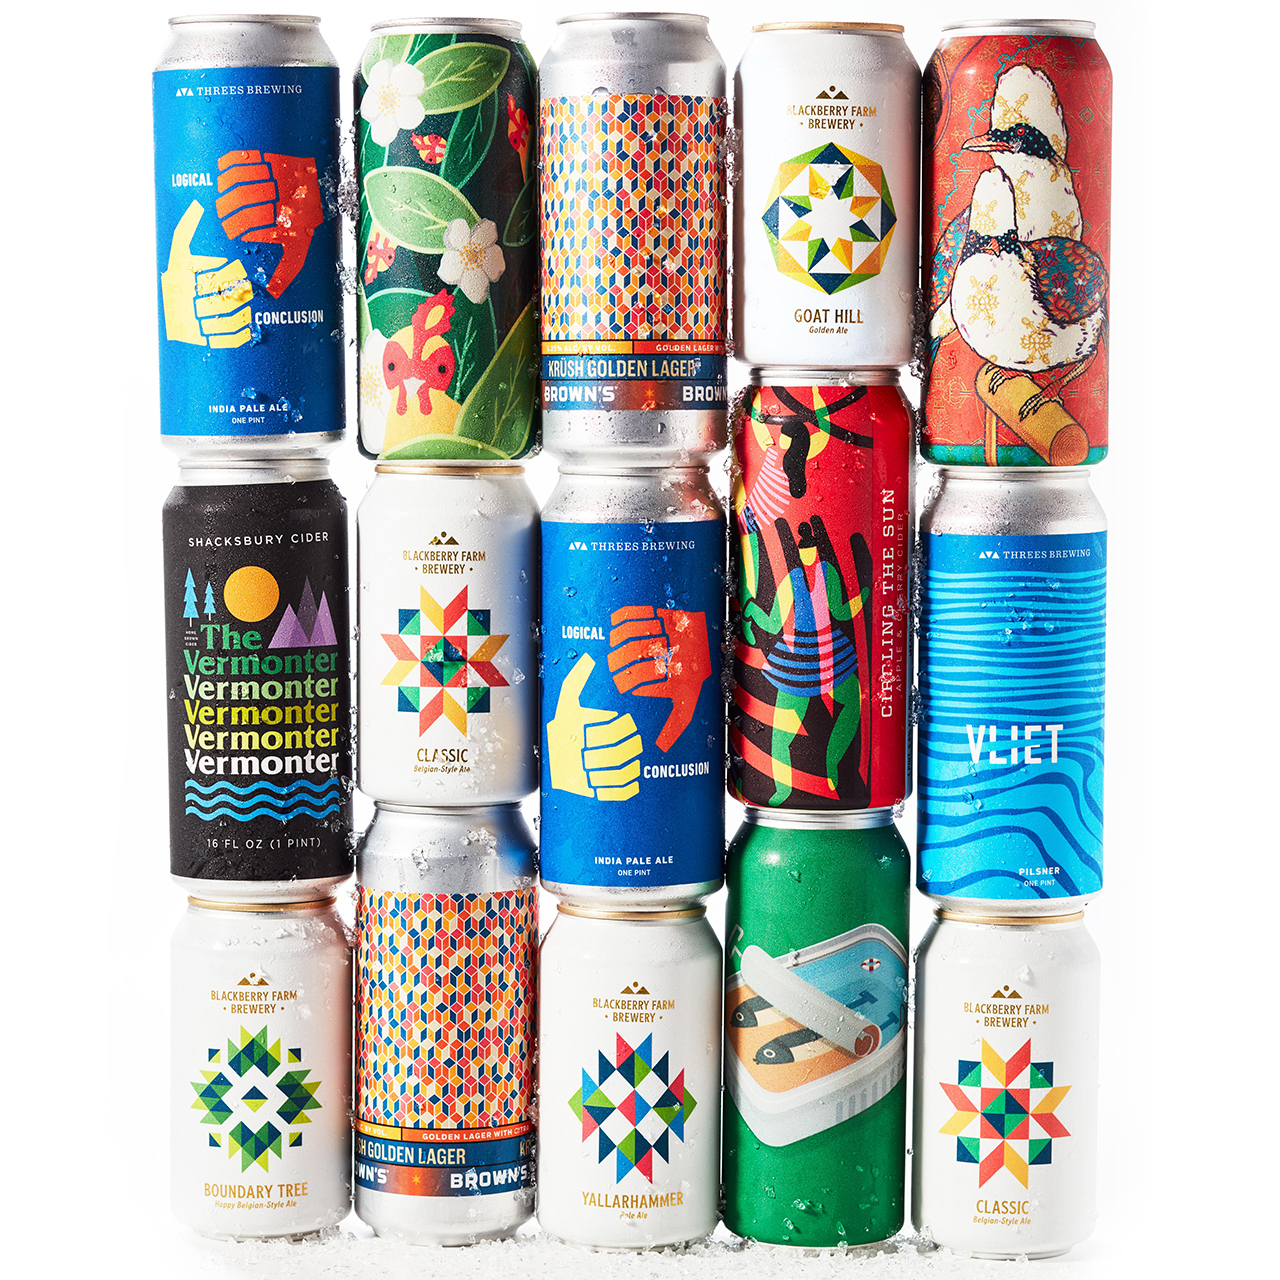 Stacked cans of beer